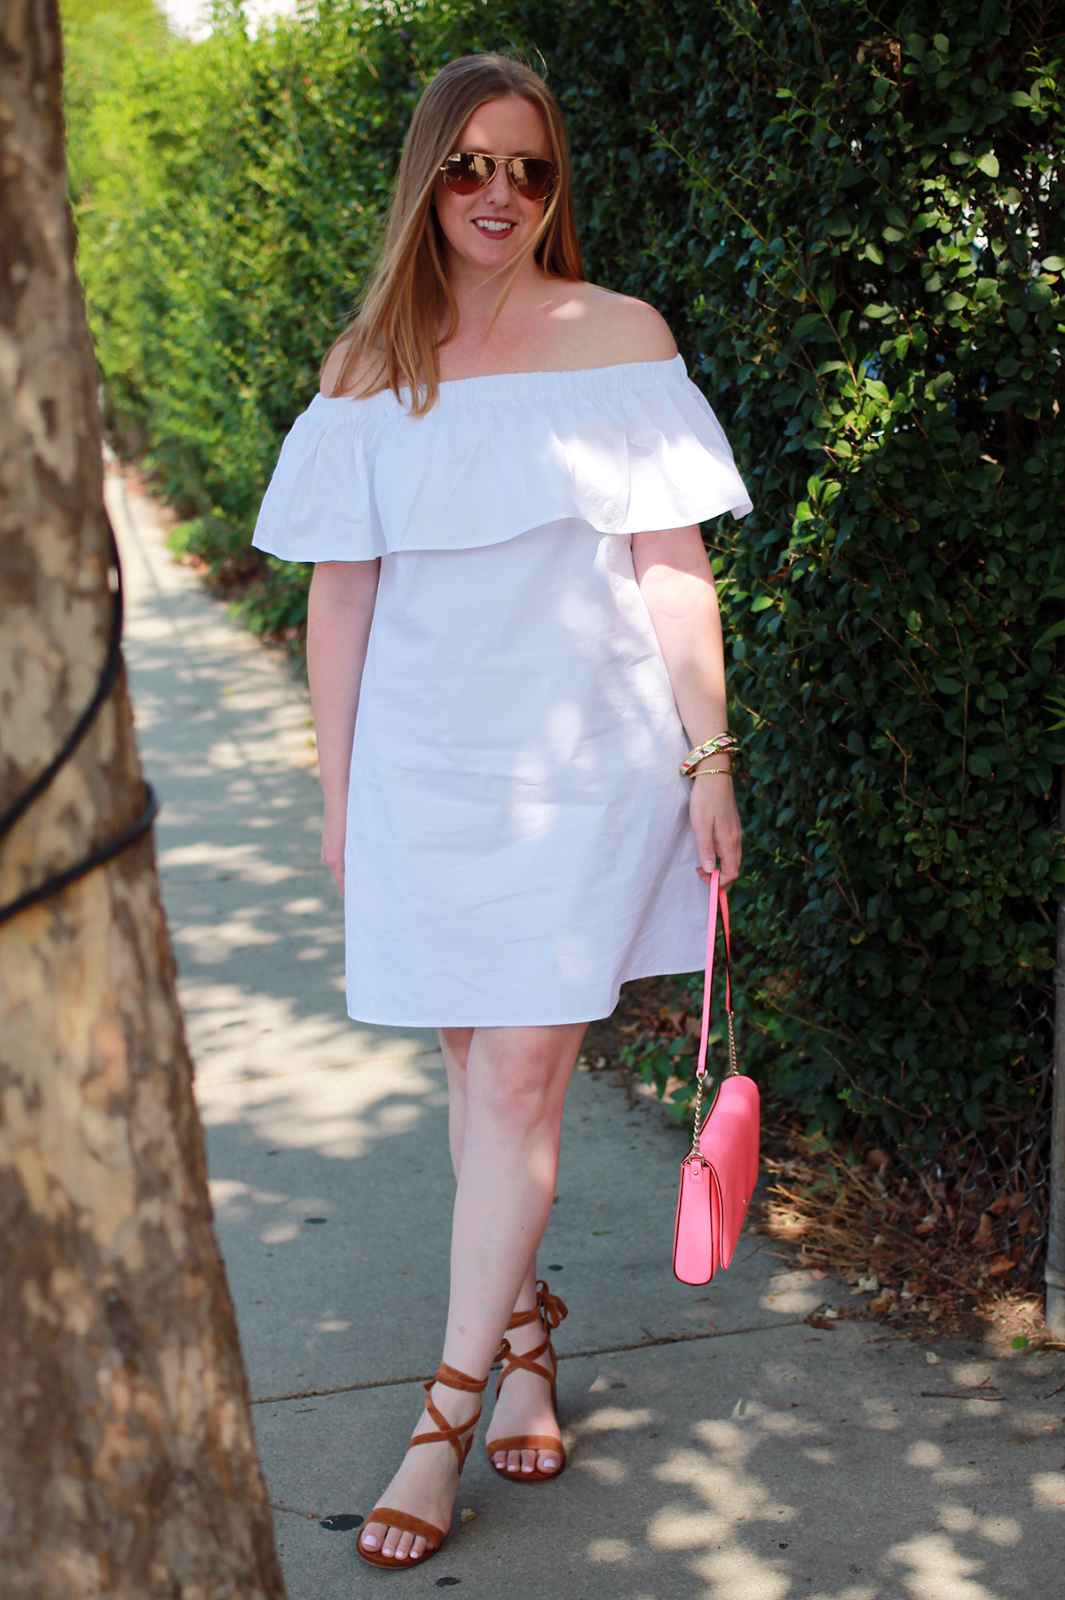 a04b3da81245   White Off-the-Shoulder Dress   fast fashion with SheIn    off-the-shoulder  style    summer dresses under  20